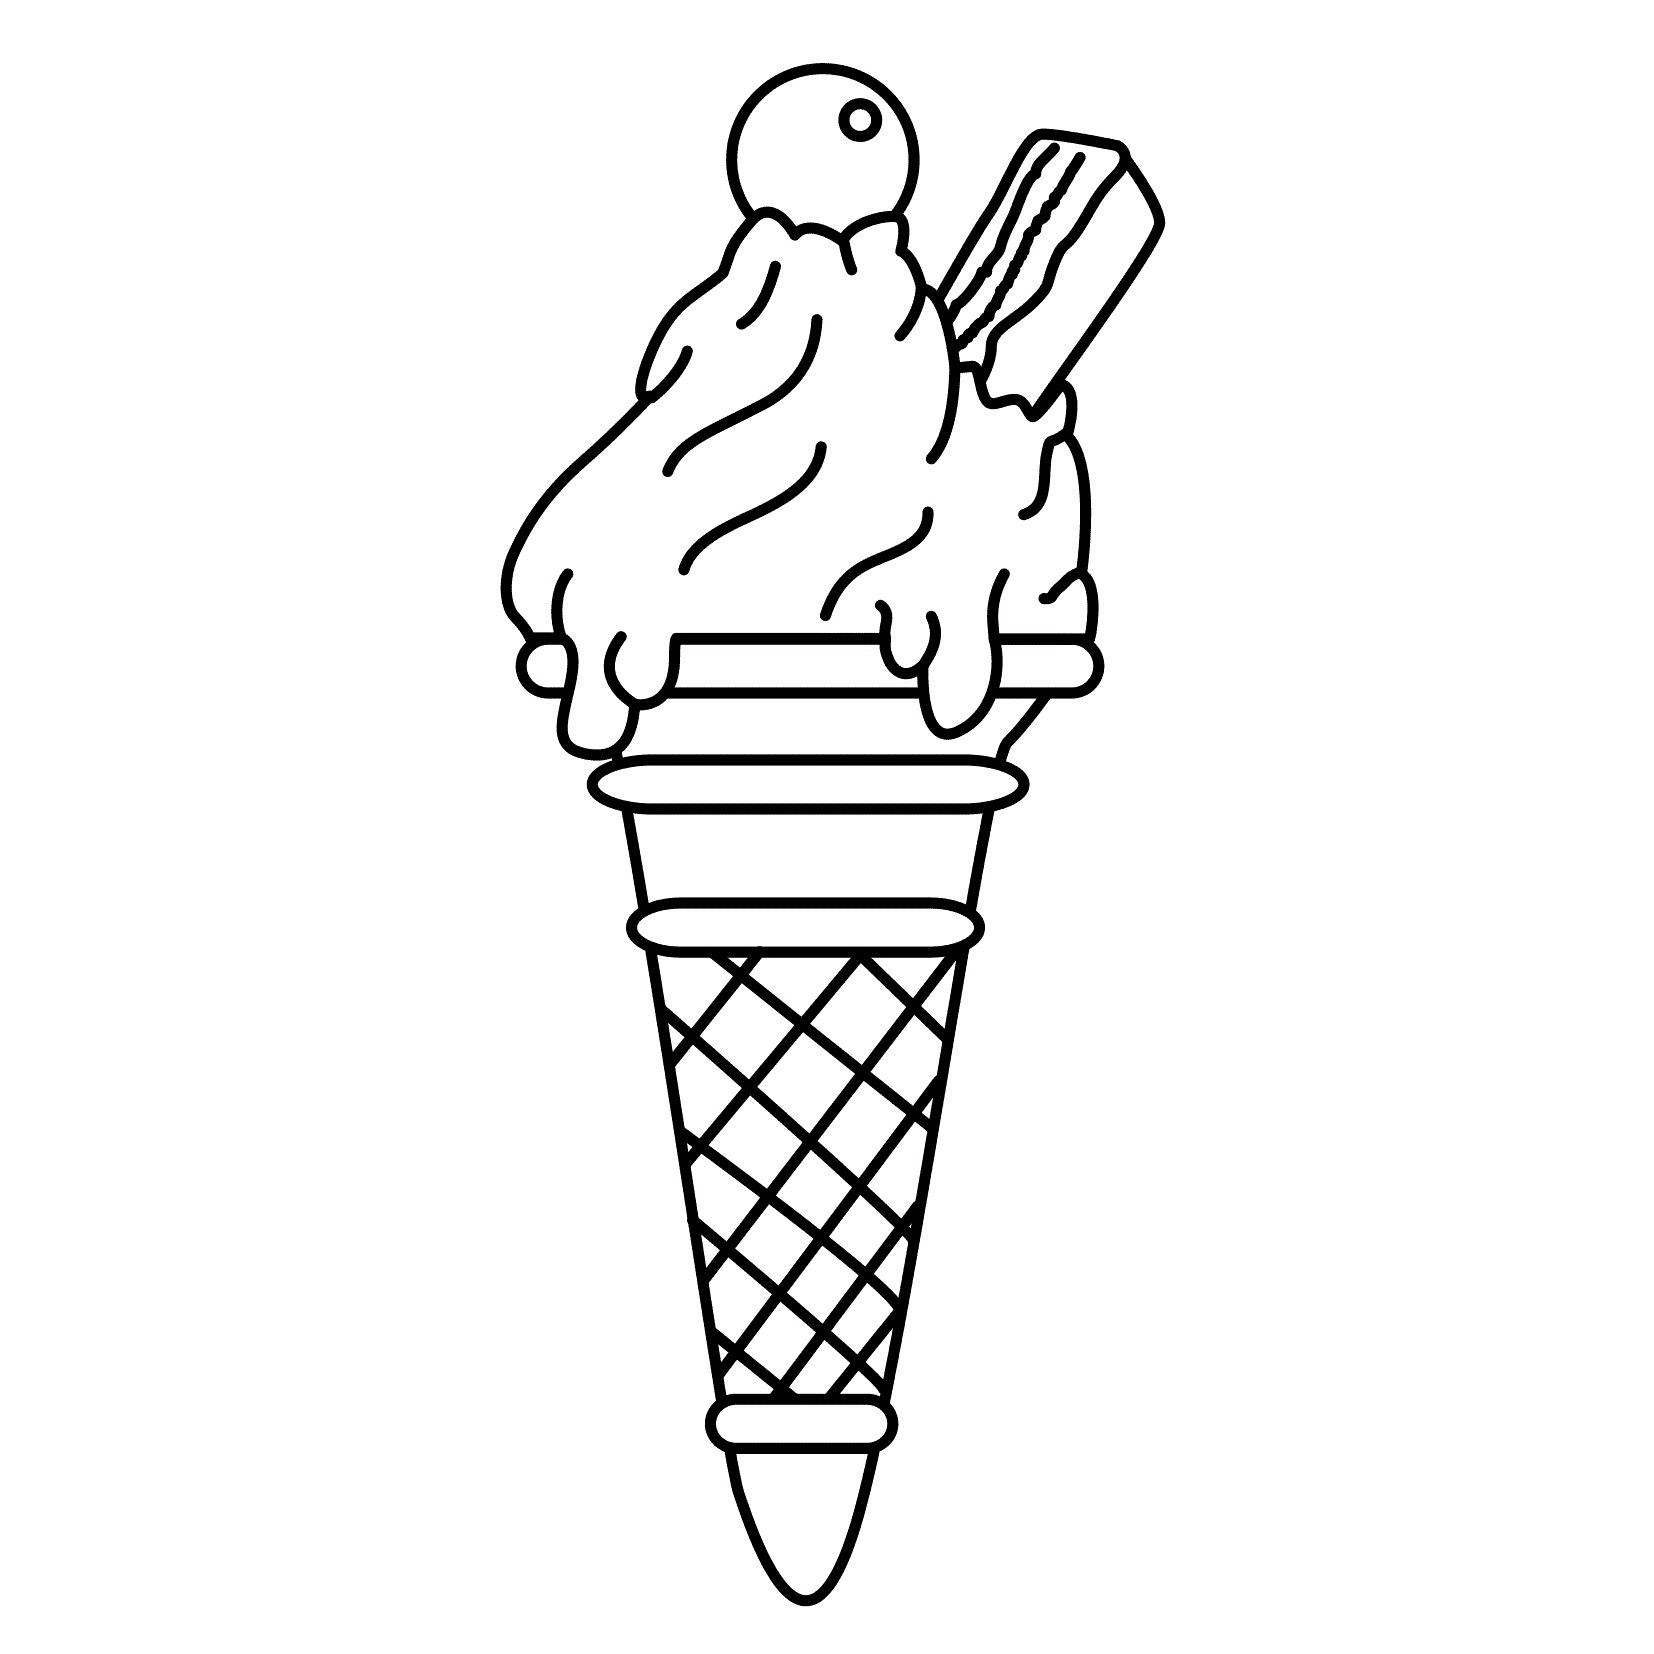 Coloring pictures of ice cream cones - Printable Ice Cream Coloring Pages